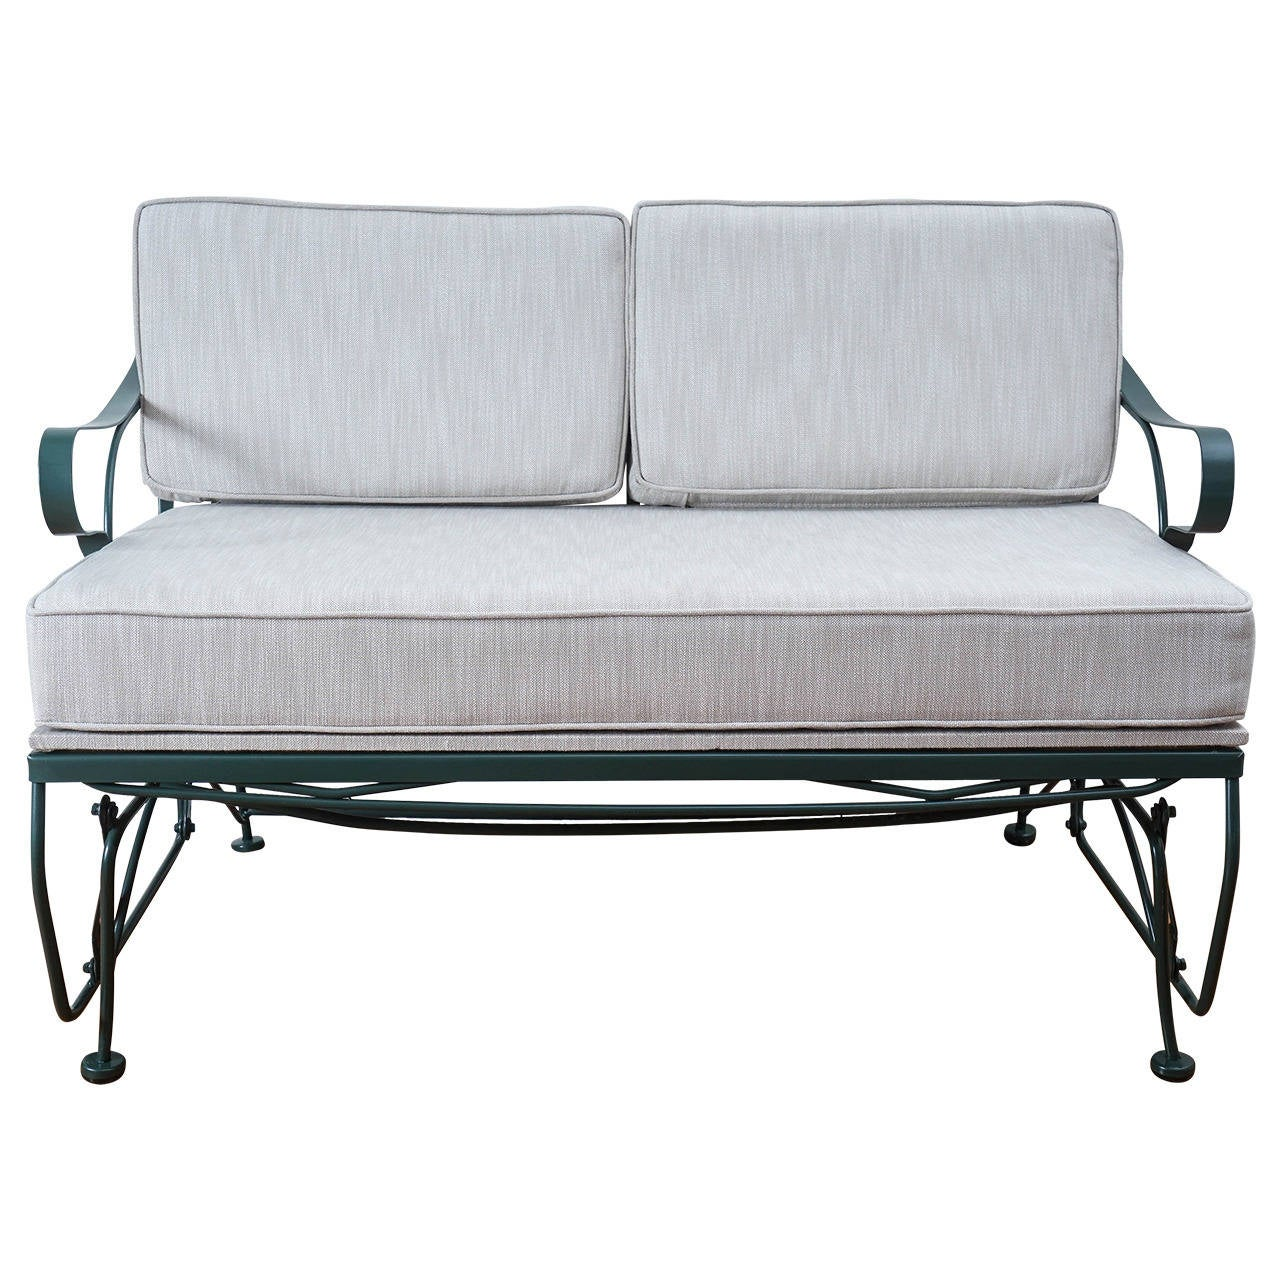 Glider Loveseat For Sale At 1stdibs